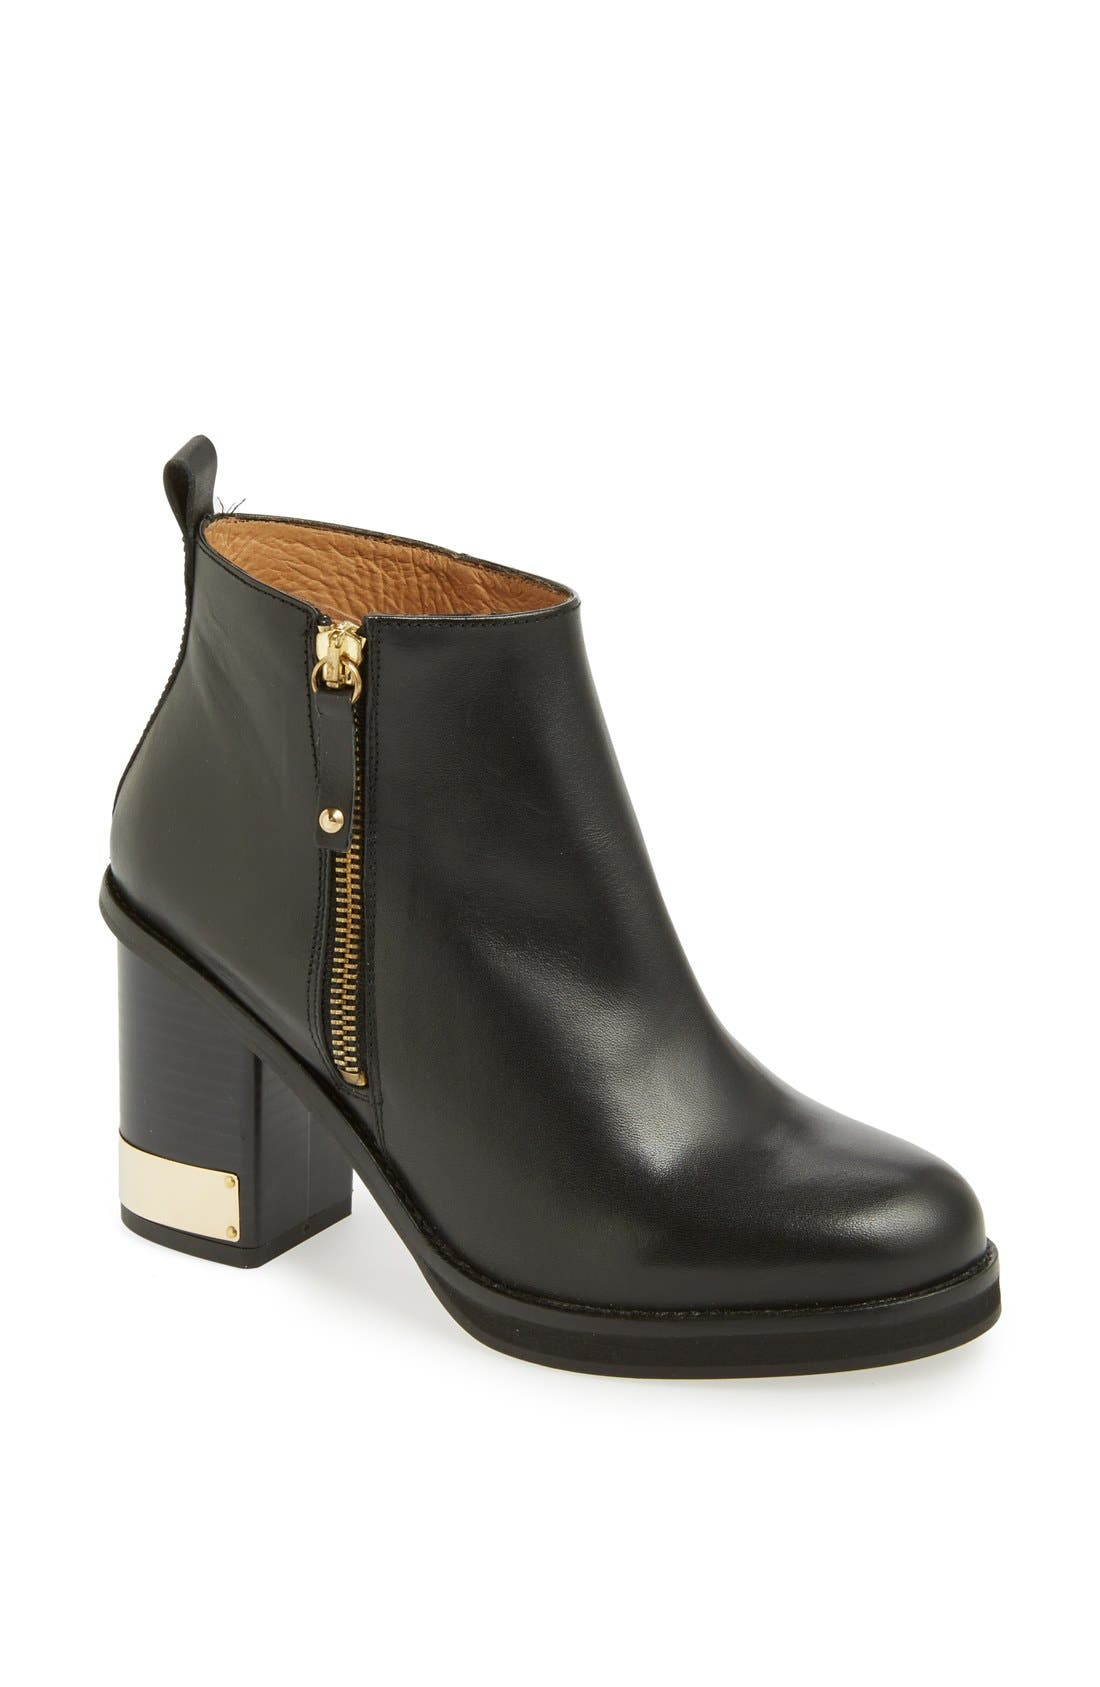 TOPSHOP 'All Ours' Ankle Boot, Main, color, 001